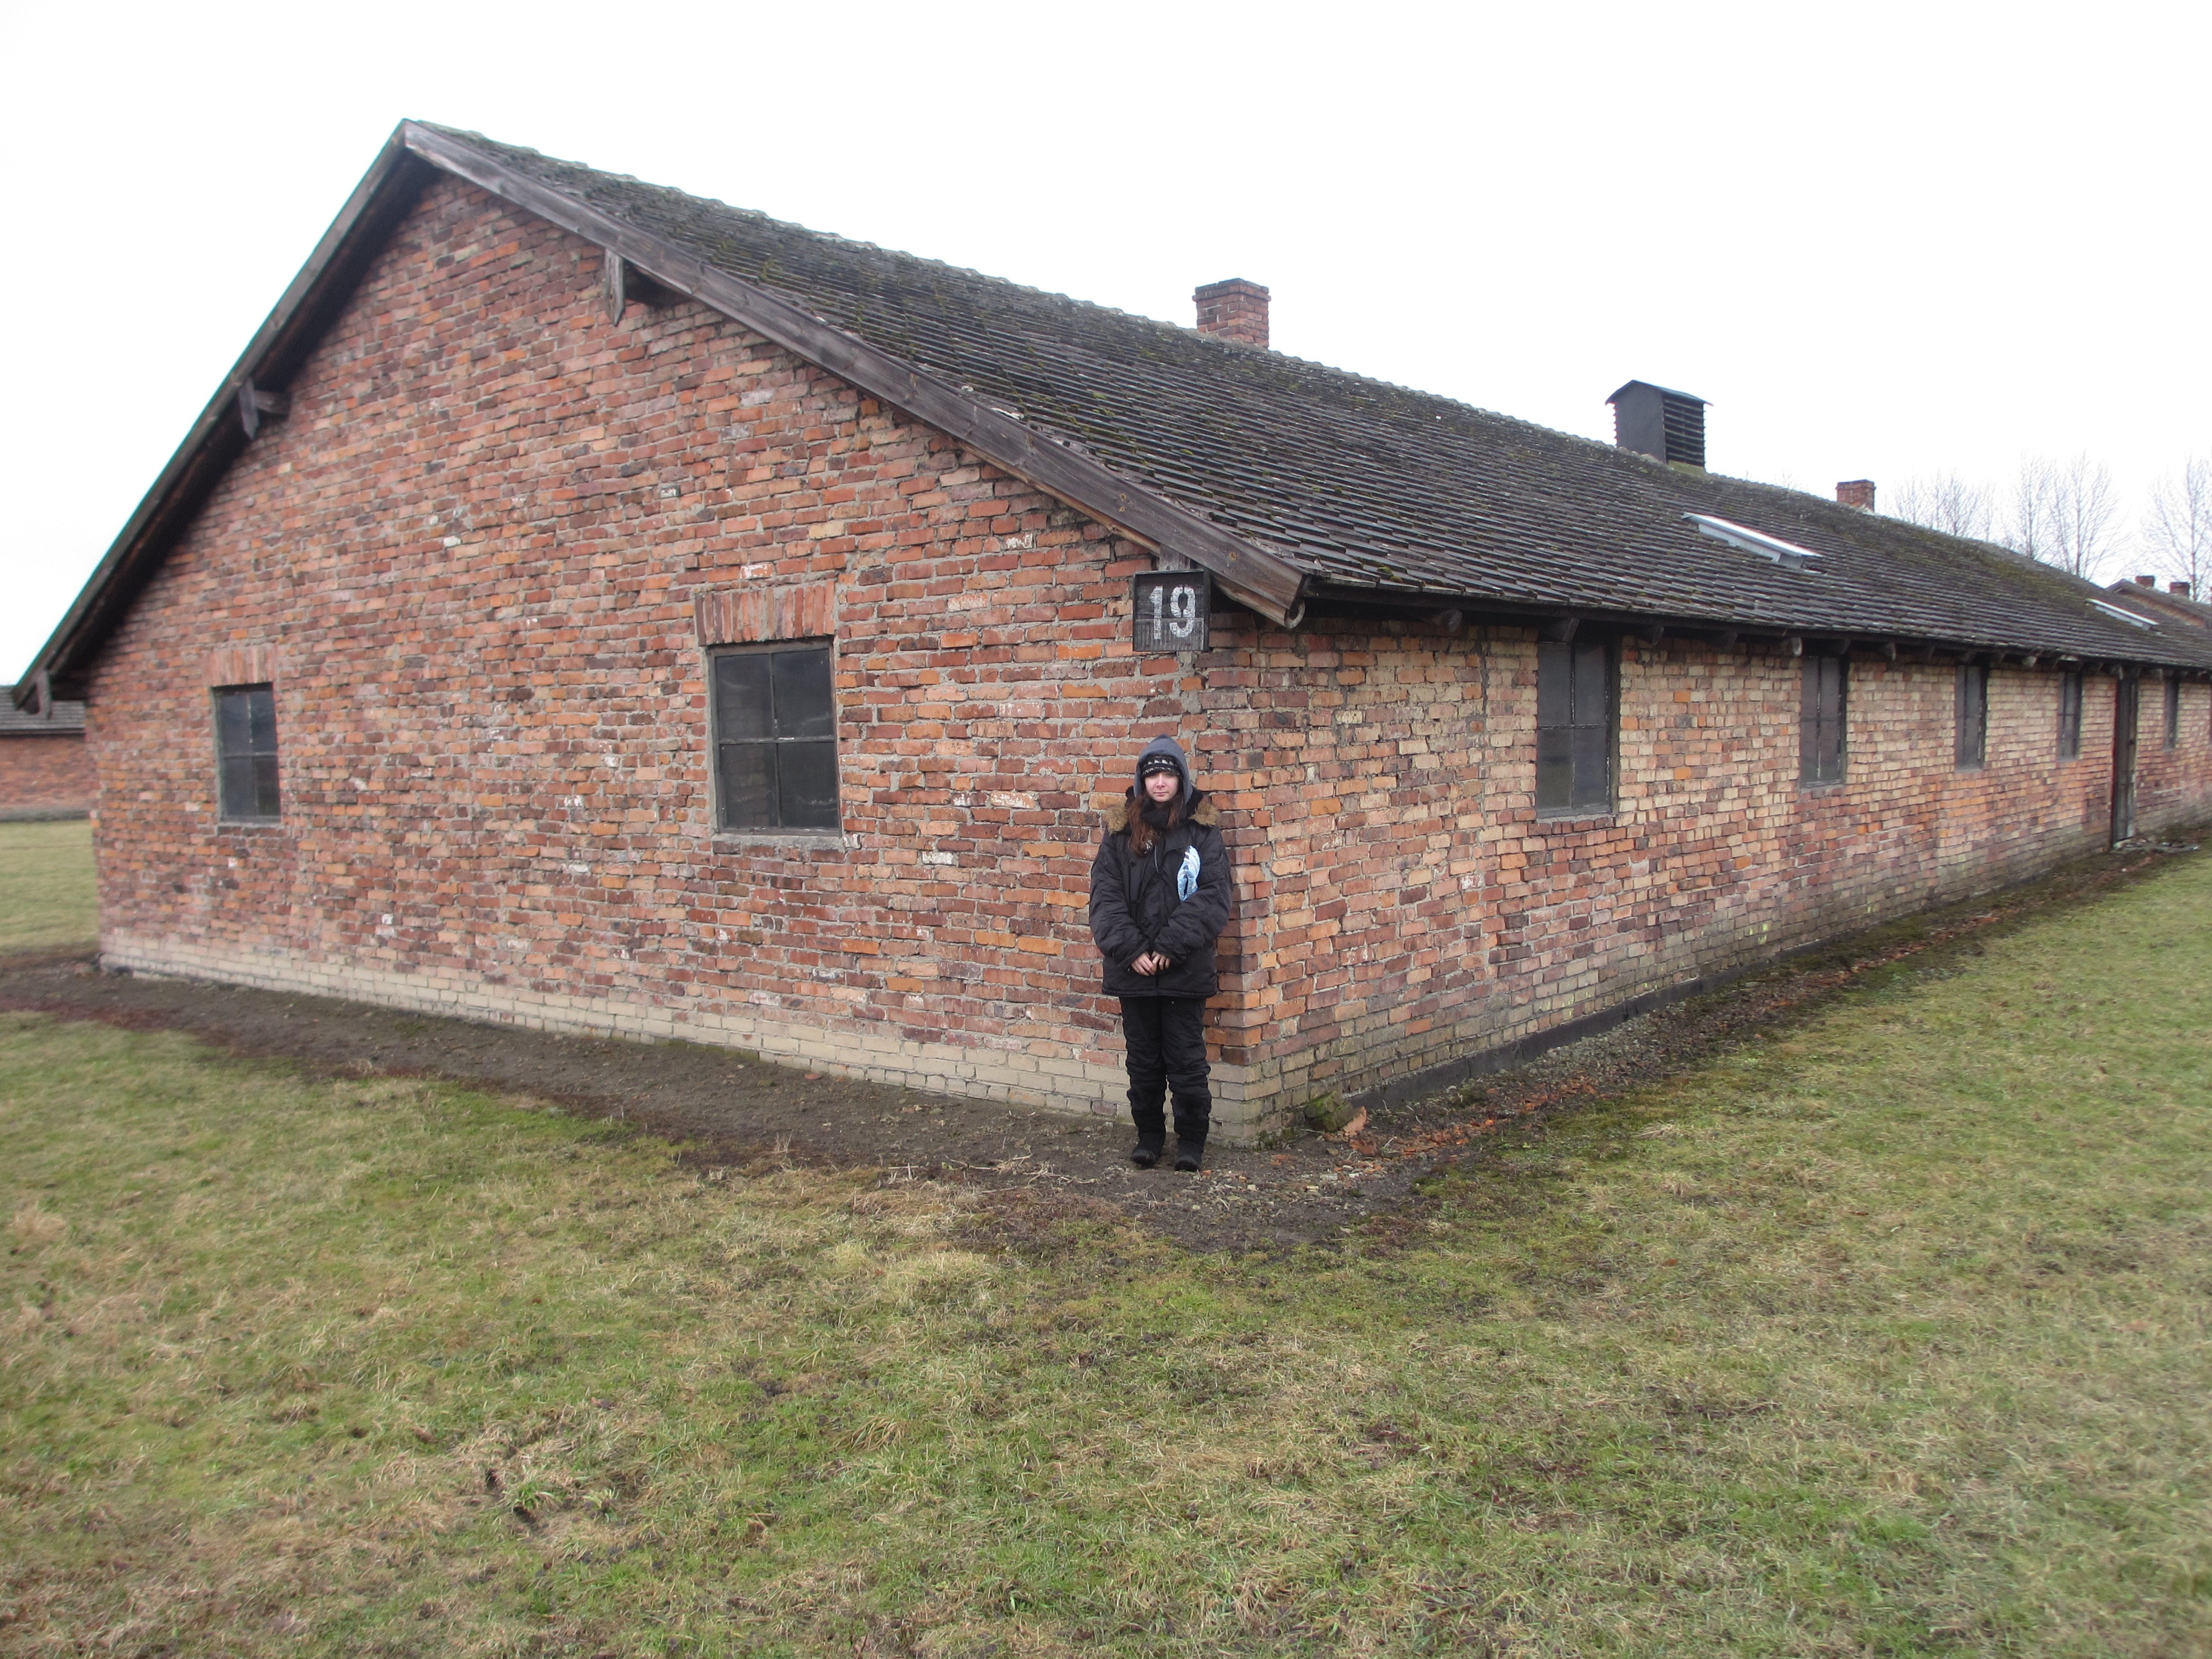 Elise Kolender, Jeffrey's daughter and Pincus' granddaughter, in front of another of the Auschwitz barracks - 2013